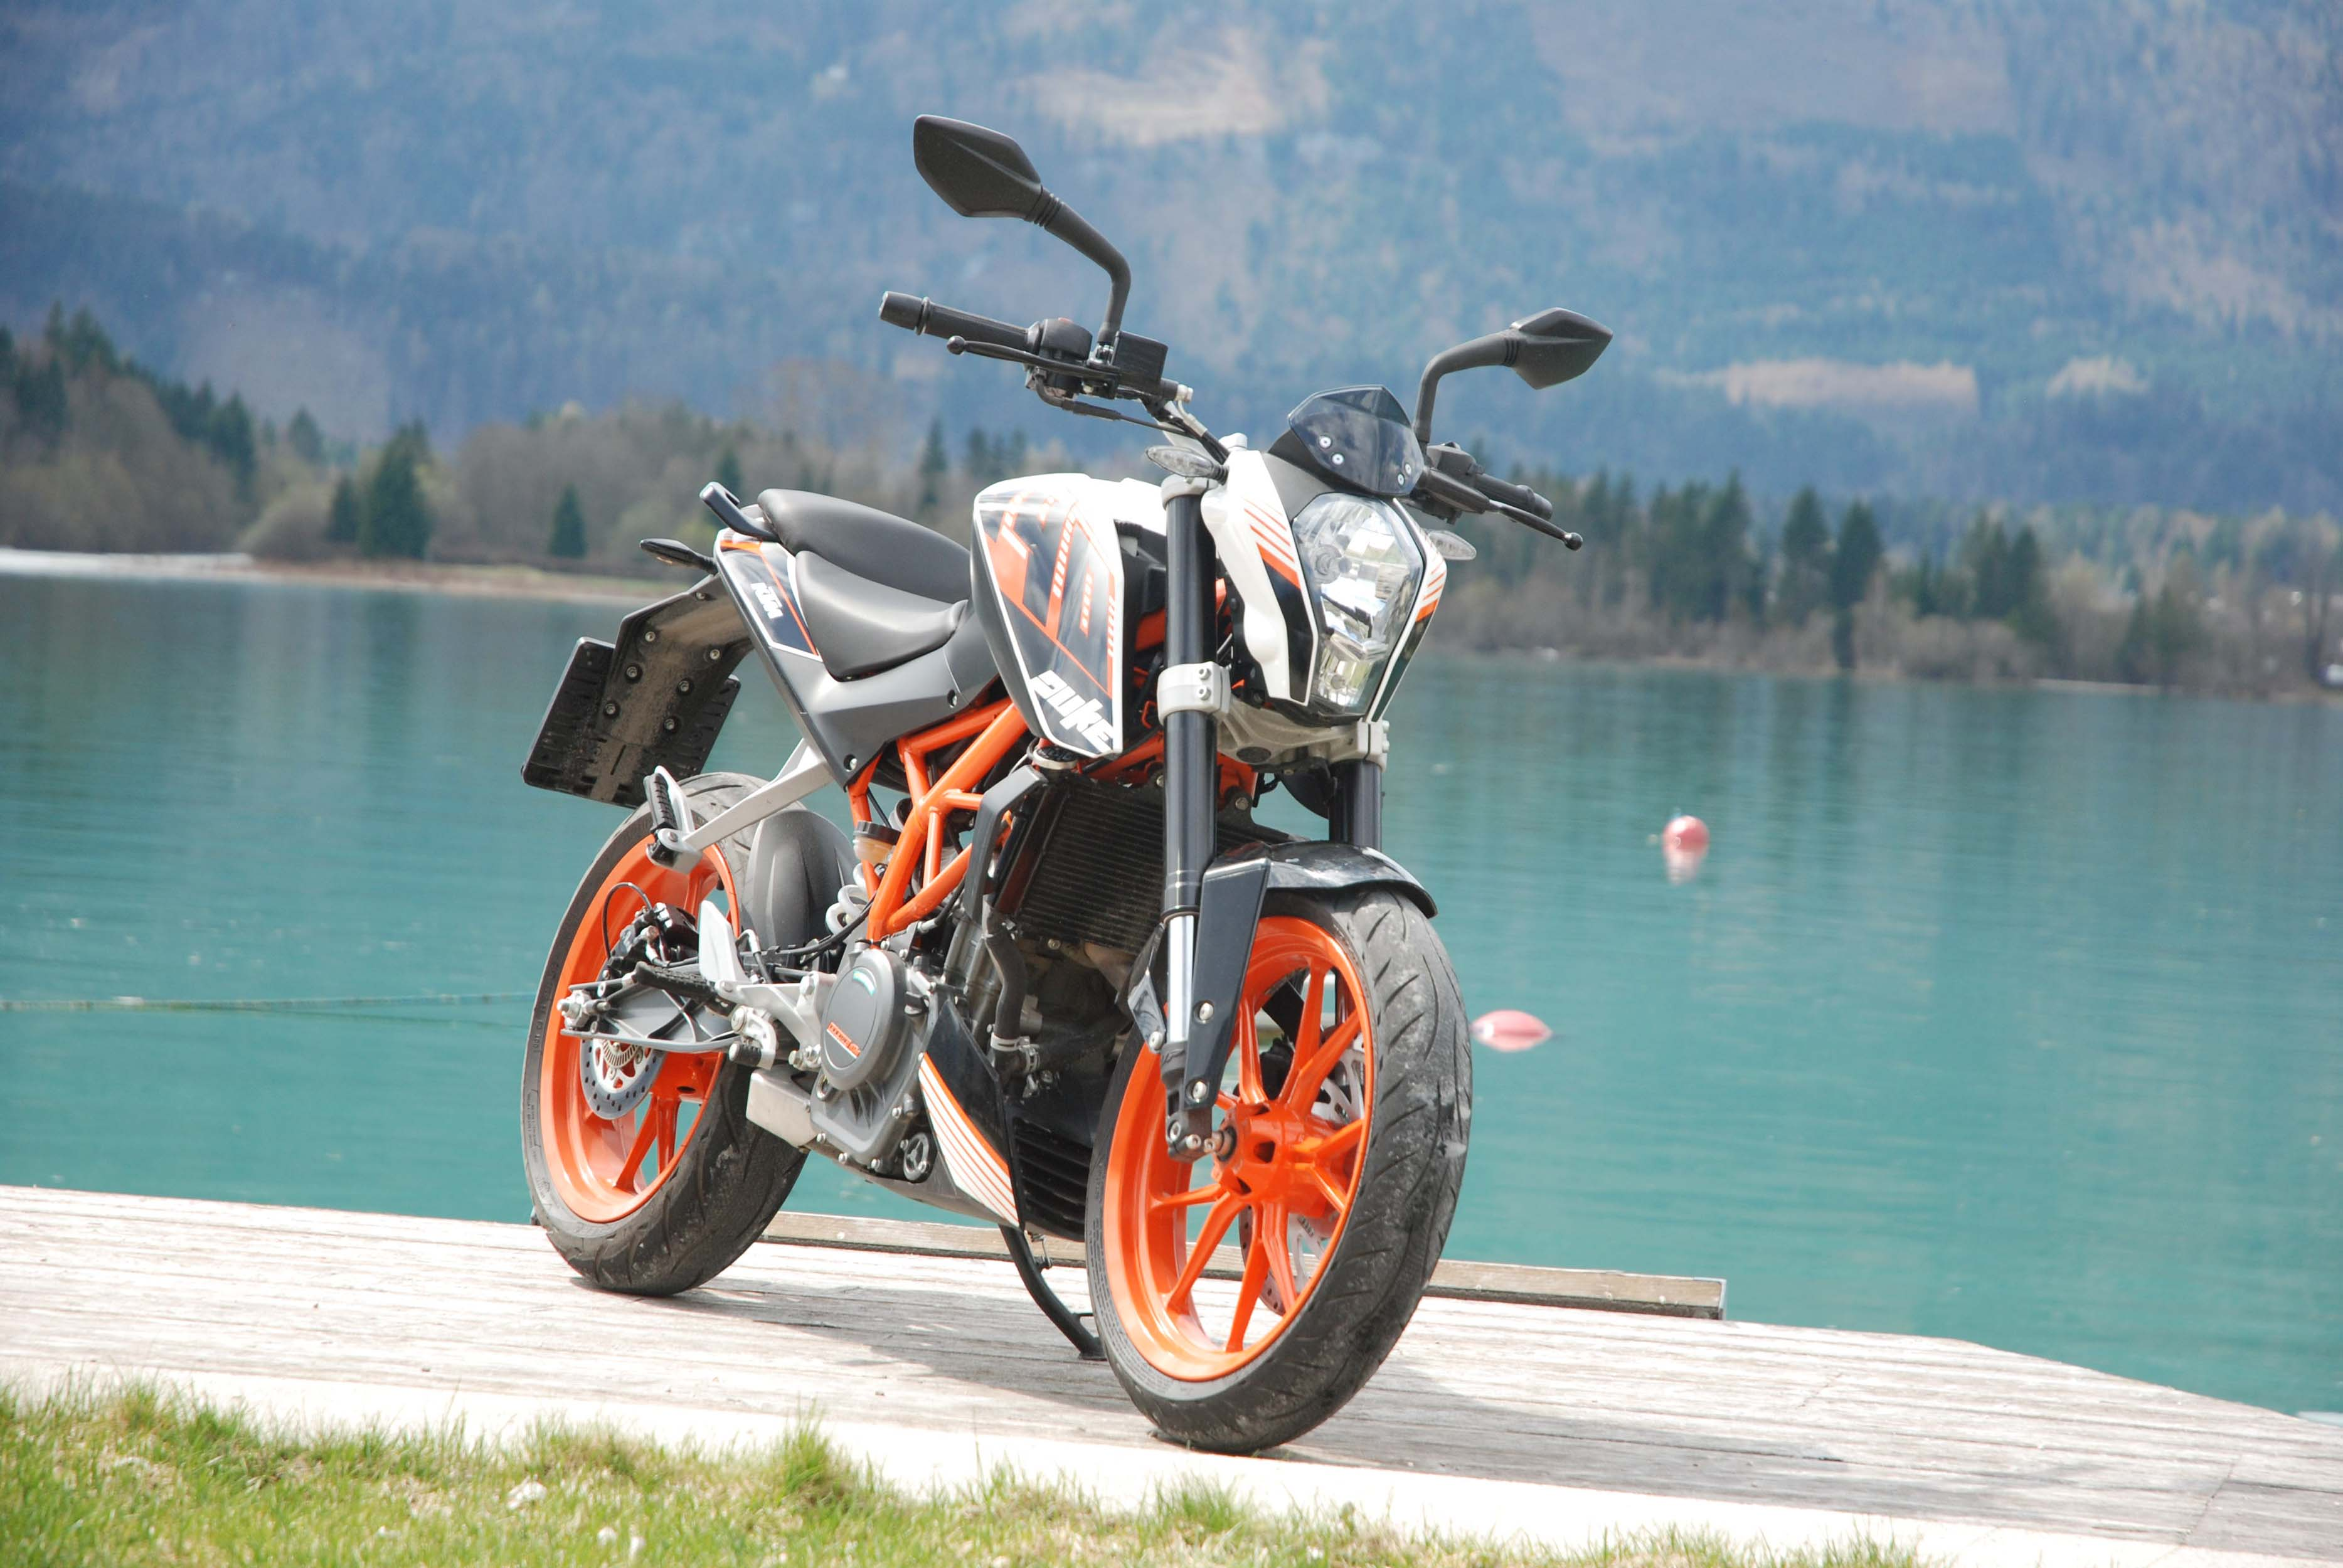 New KTM 390 Duke Image Gallery